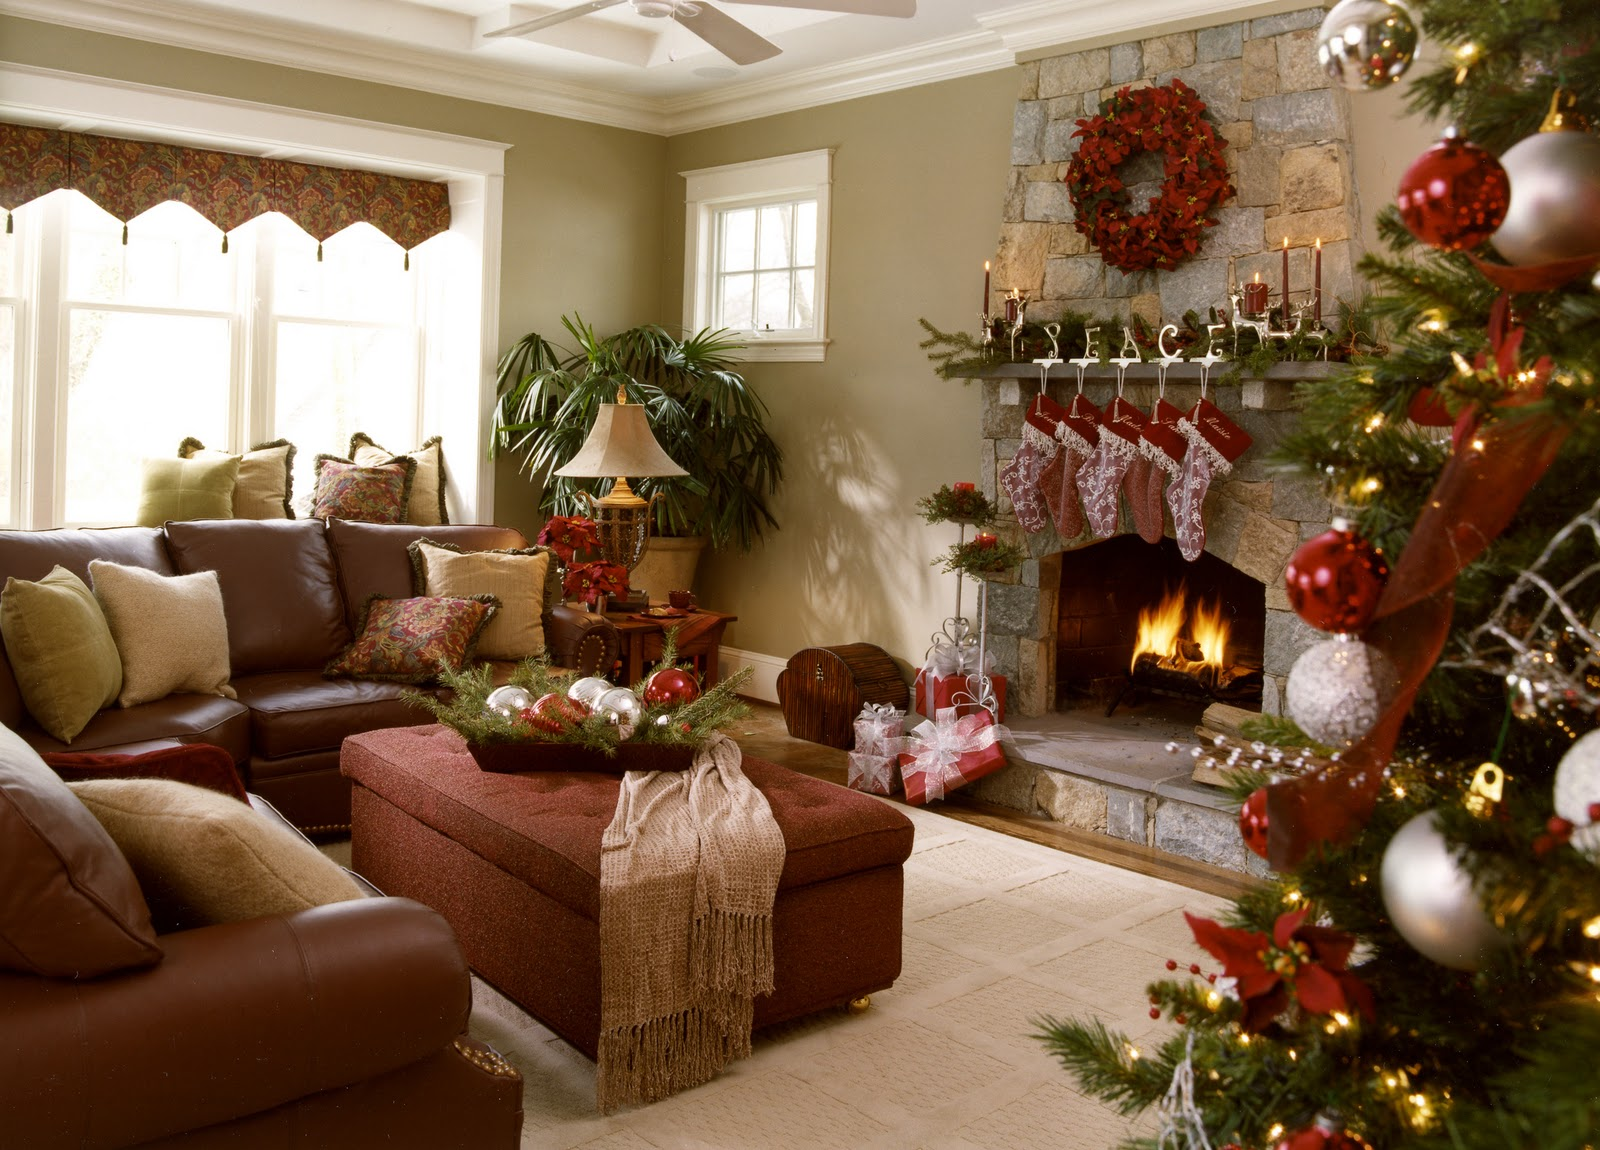 http://interiordesignparadise.com/wp-content/uploads/2016/10/holiday-decor-living-room-decorating-ideas-for-christmas.jpg